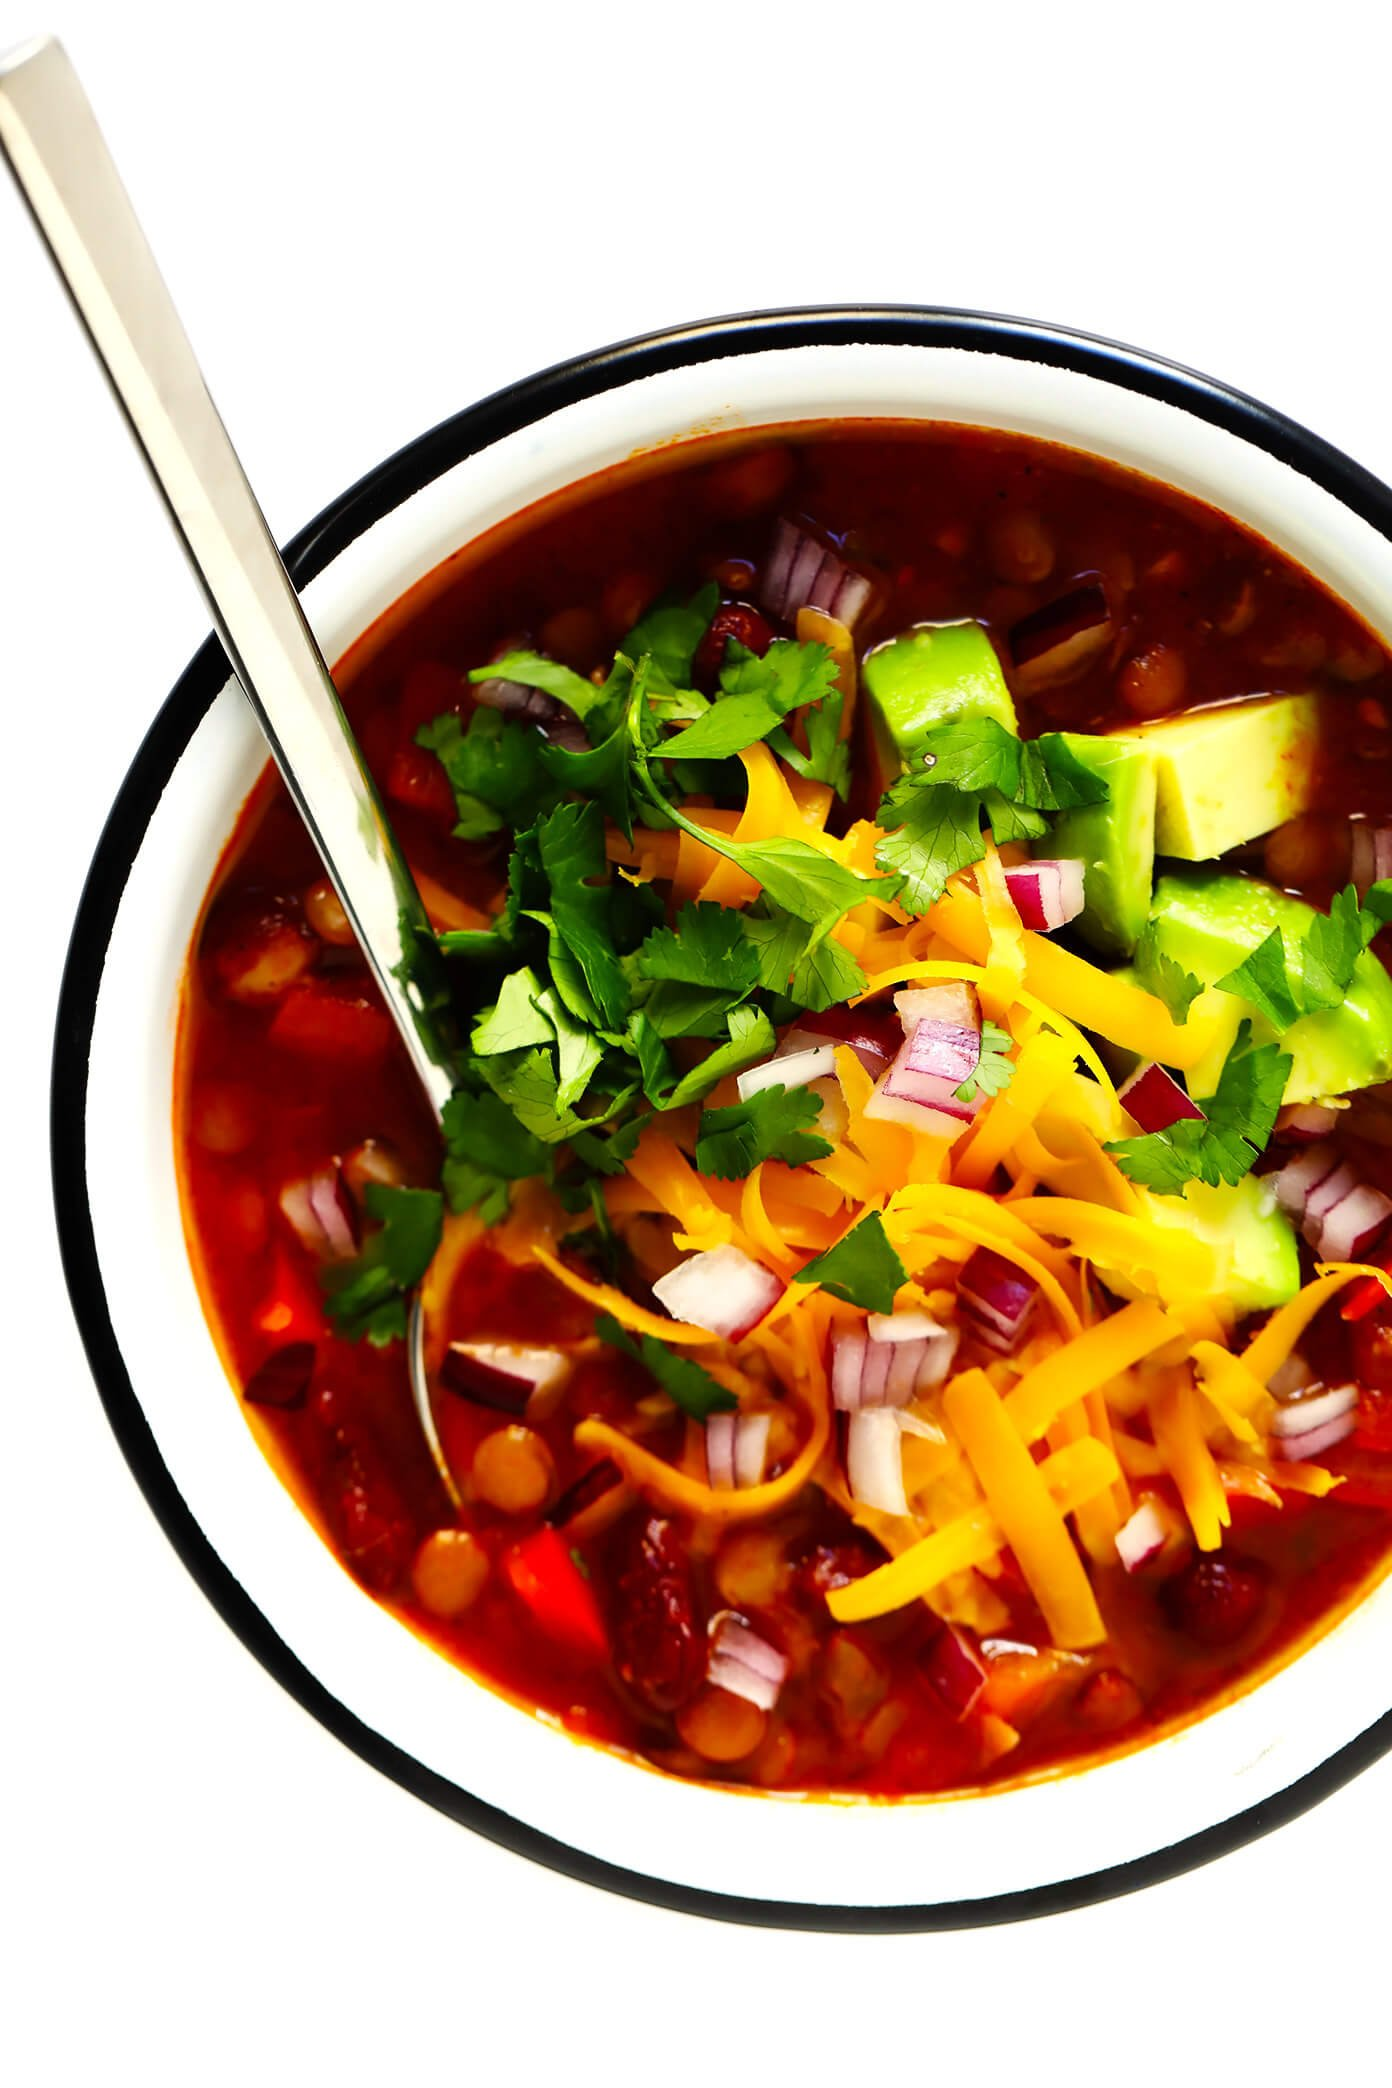 Amazing Vegetarian Chili Recipe (also Gluten-Free and Vegan)